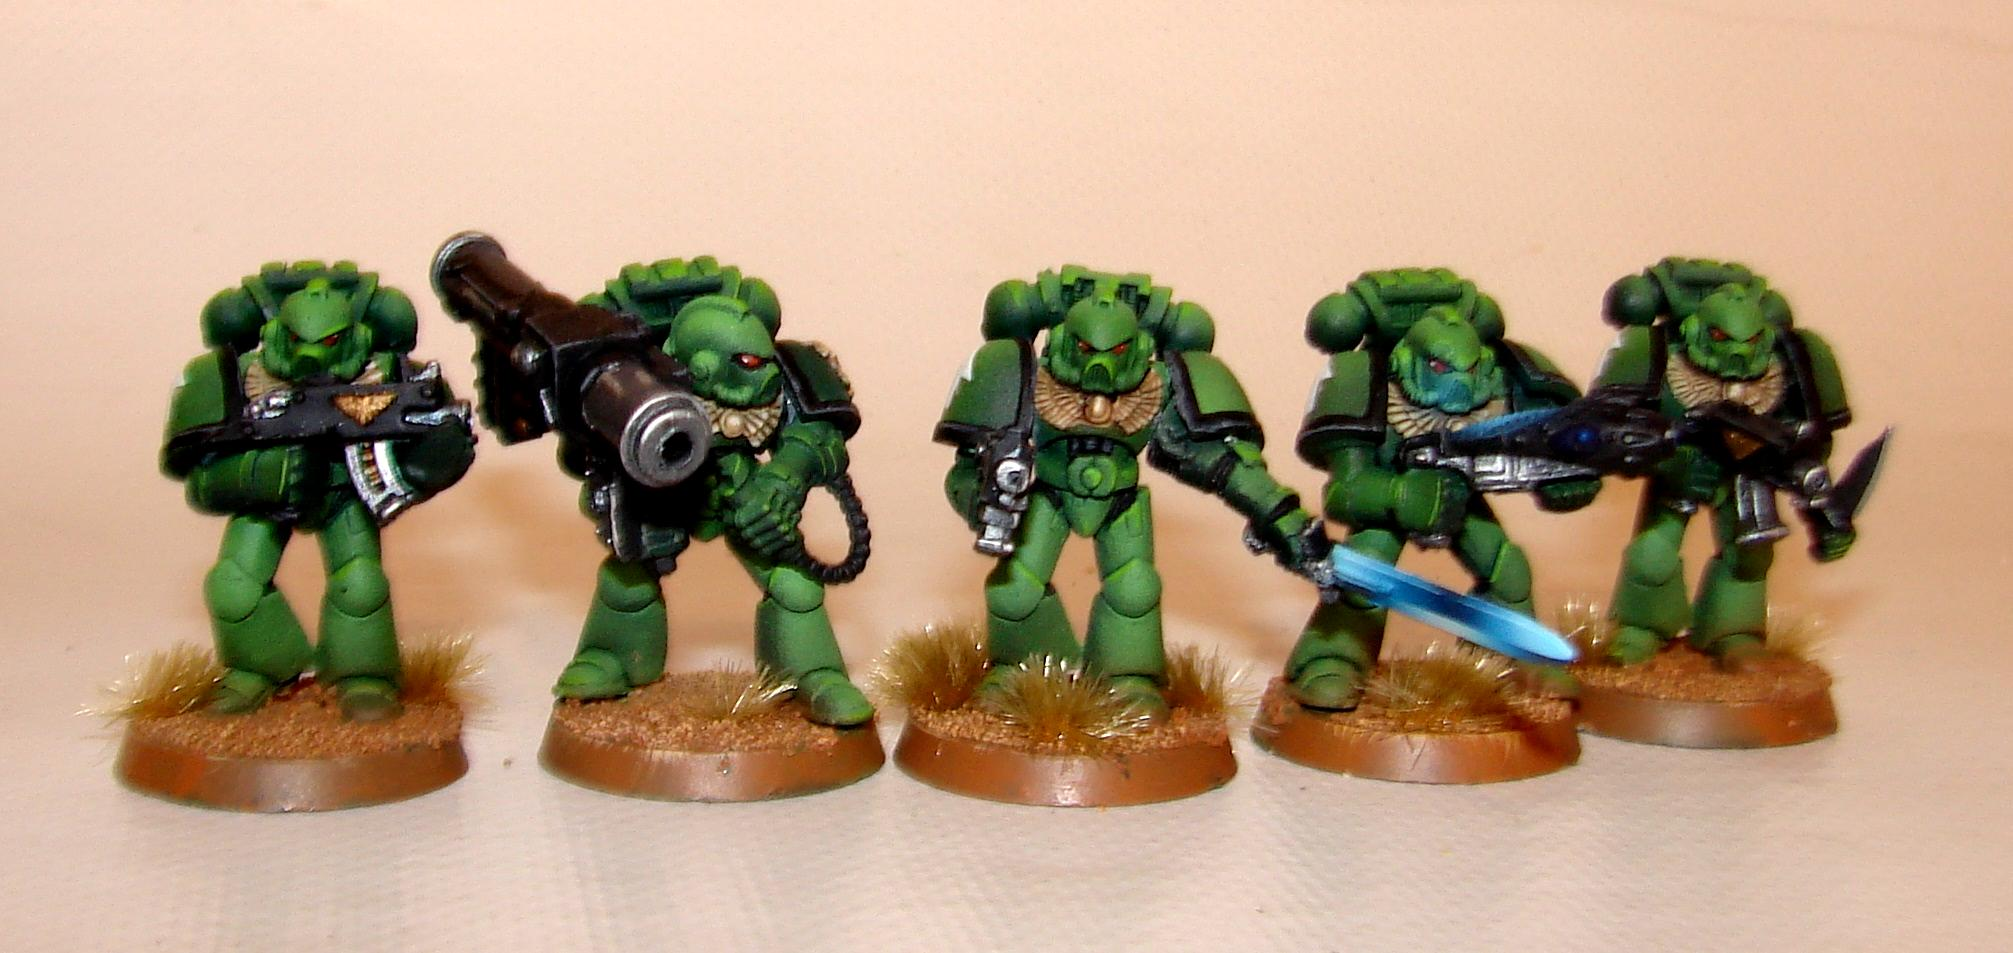 Aurora Marines, Green Marines, Object Source Lighting, Power Sword, Salamanders, Sons Of Medusa, Space Marines, Warhammer 40,000, Warhammer Fantasy